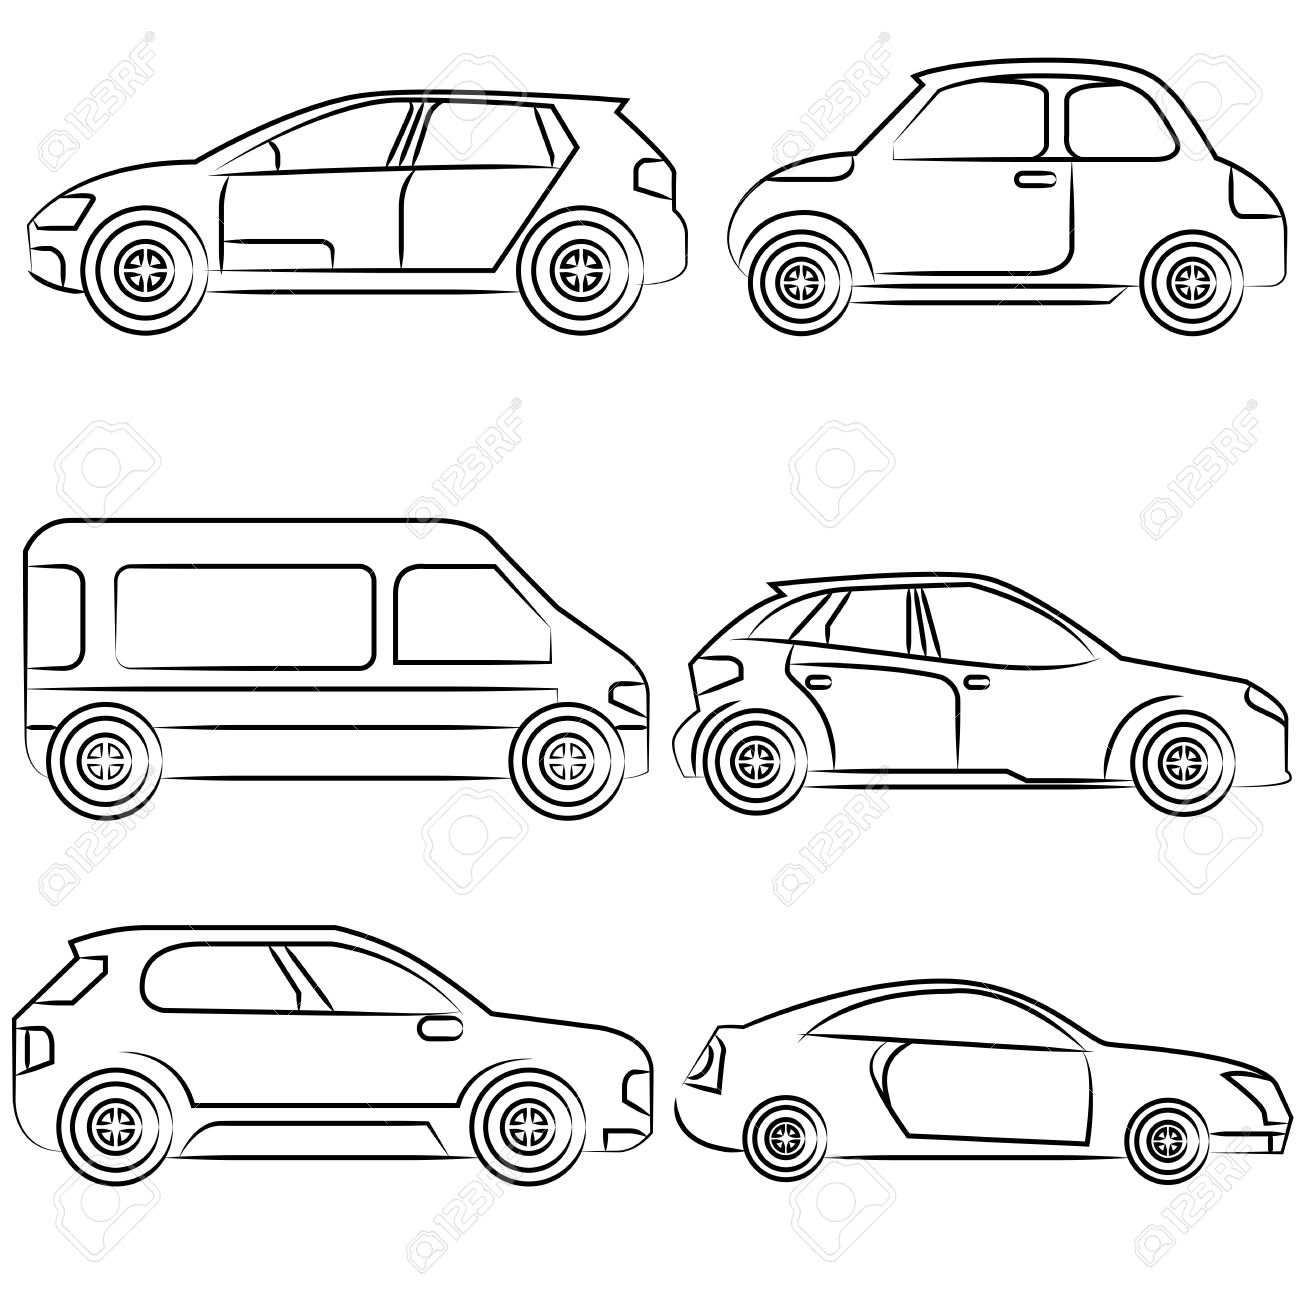 Car drawing images at getdrawings free for personal use car